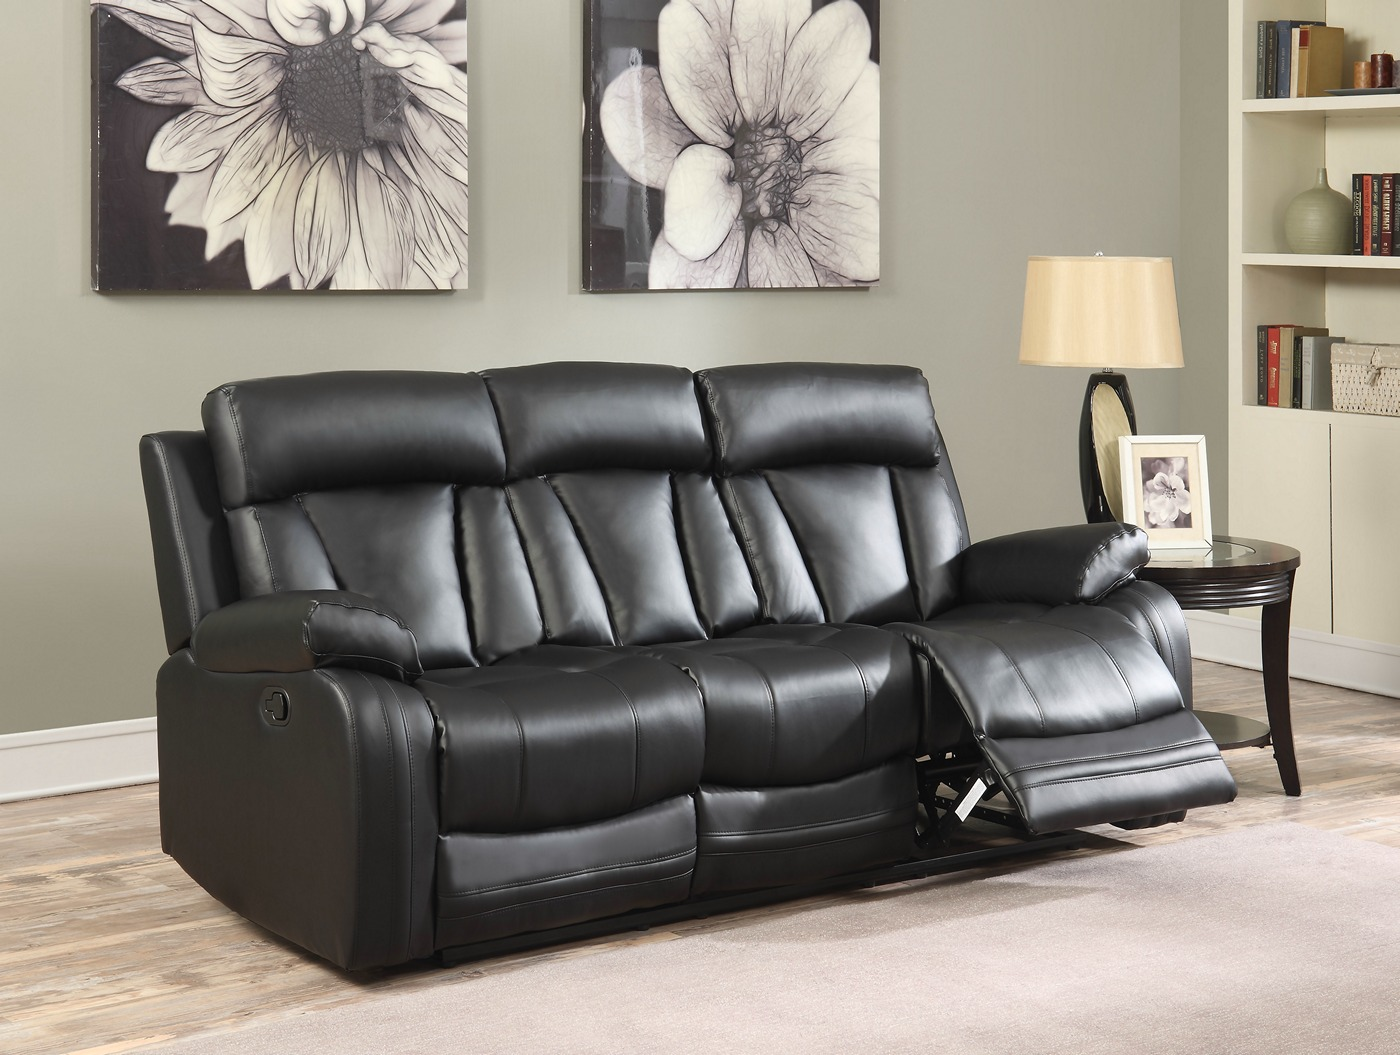 Kyson Modern Black Bonded Leather Reclining Sofa Loveseat W Channel Backs